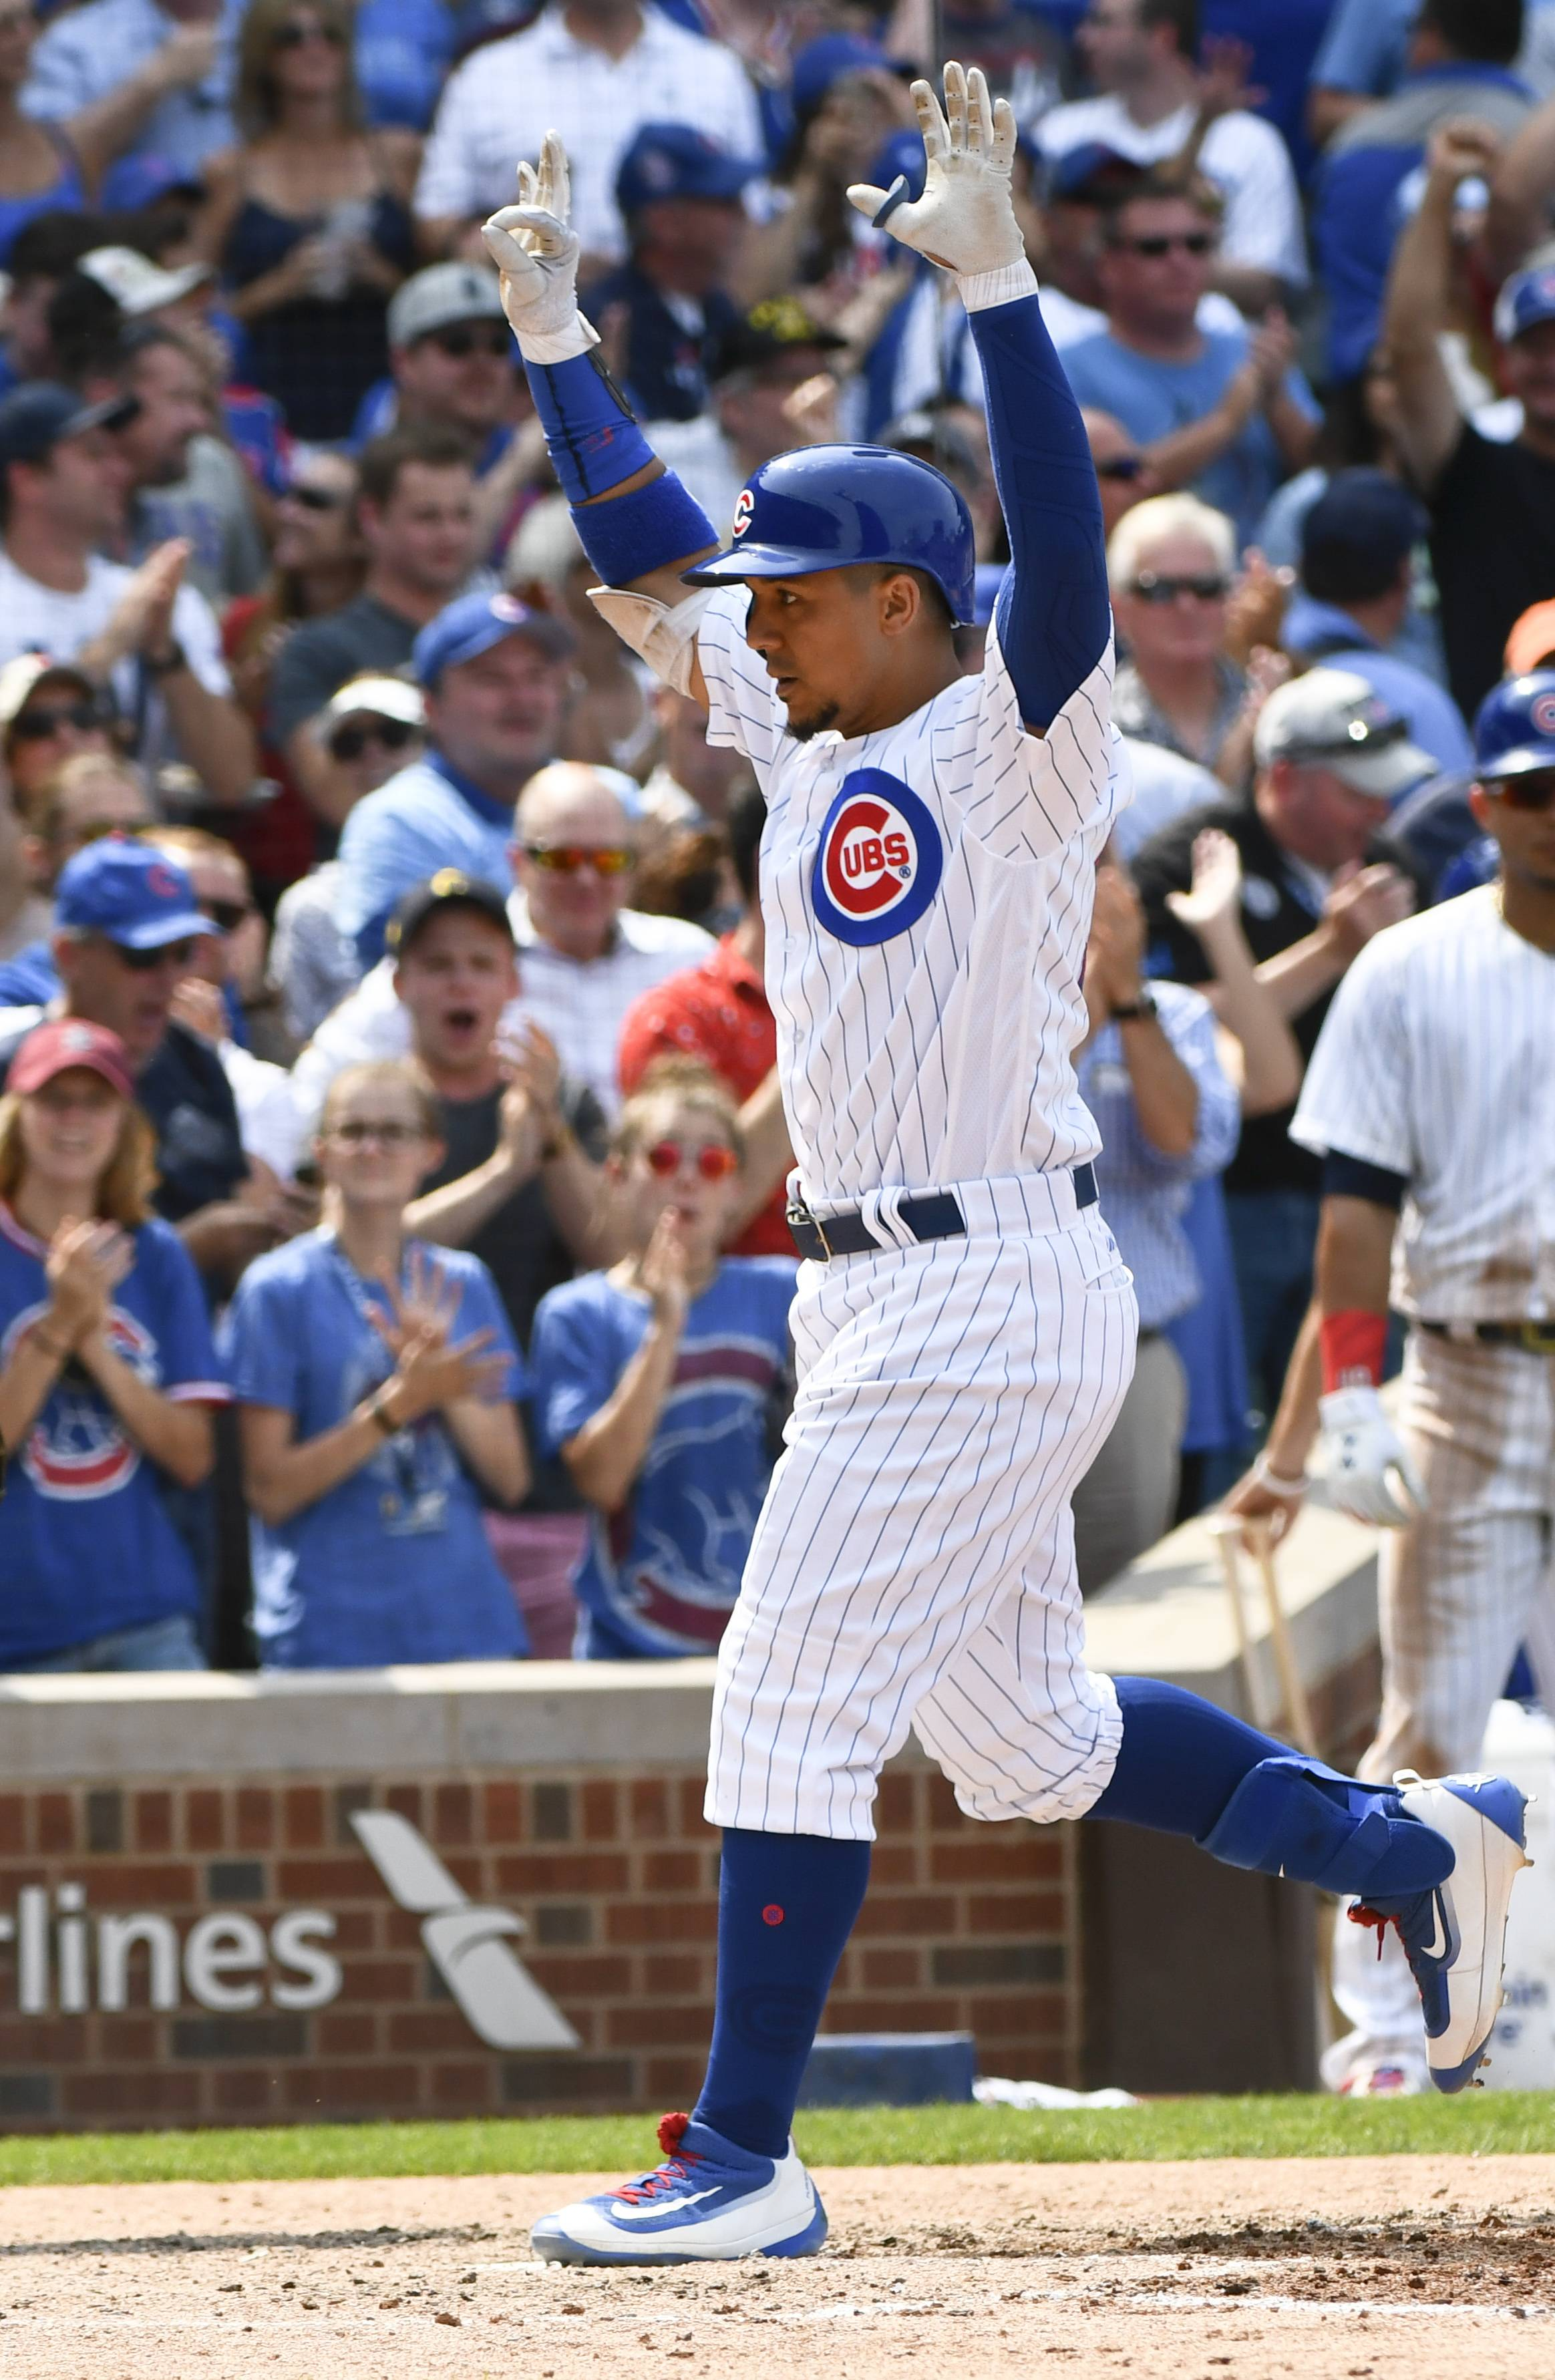 The Chicago Cubs got a sixth-inning pinch homer from Jon Jay to tie the game, and Ian Happ singled home 2 in the seventh Wednesday to rally the Cubs to a 7-3 victory over the Tampa Bay Rays at Wrigley Field. The Cubs once again returned to .500, at 42-42, with the first-place Milwaukee Brewers coming to town for a makeup game.